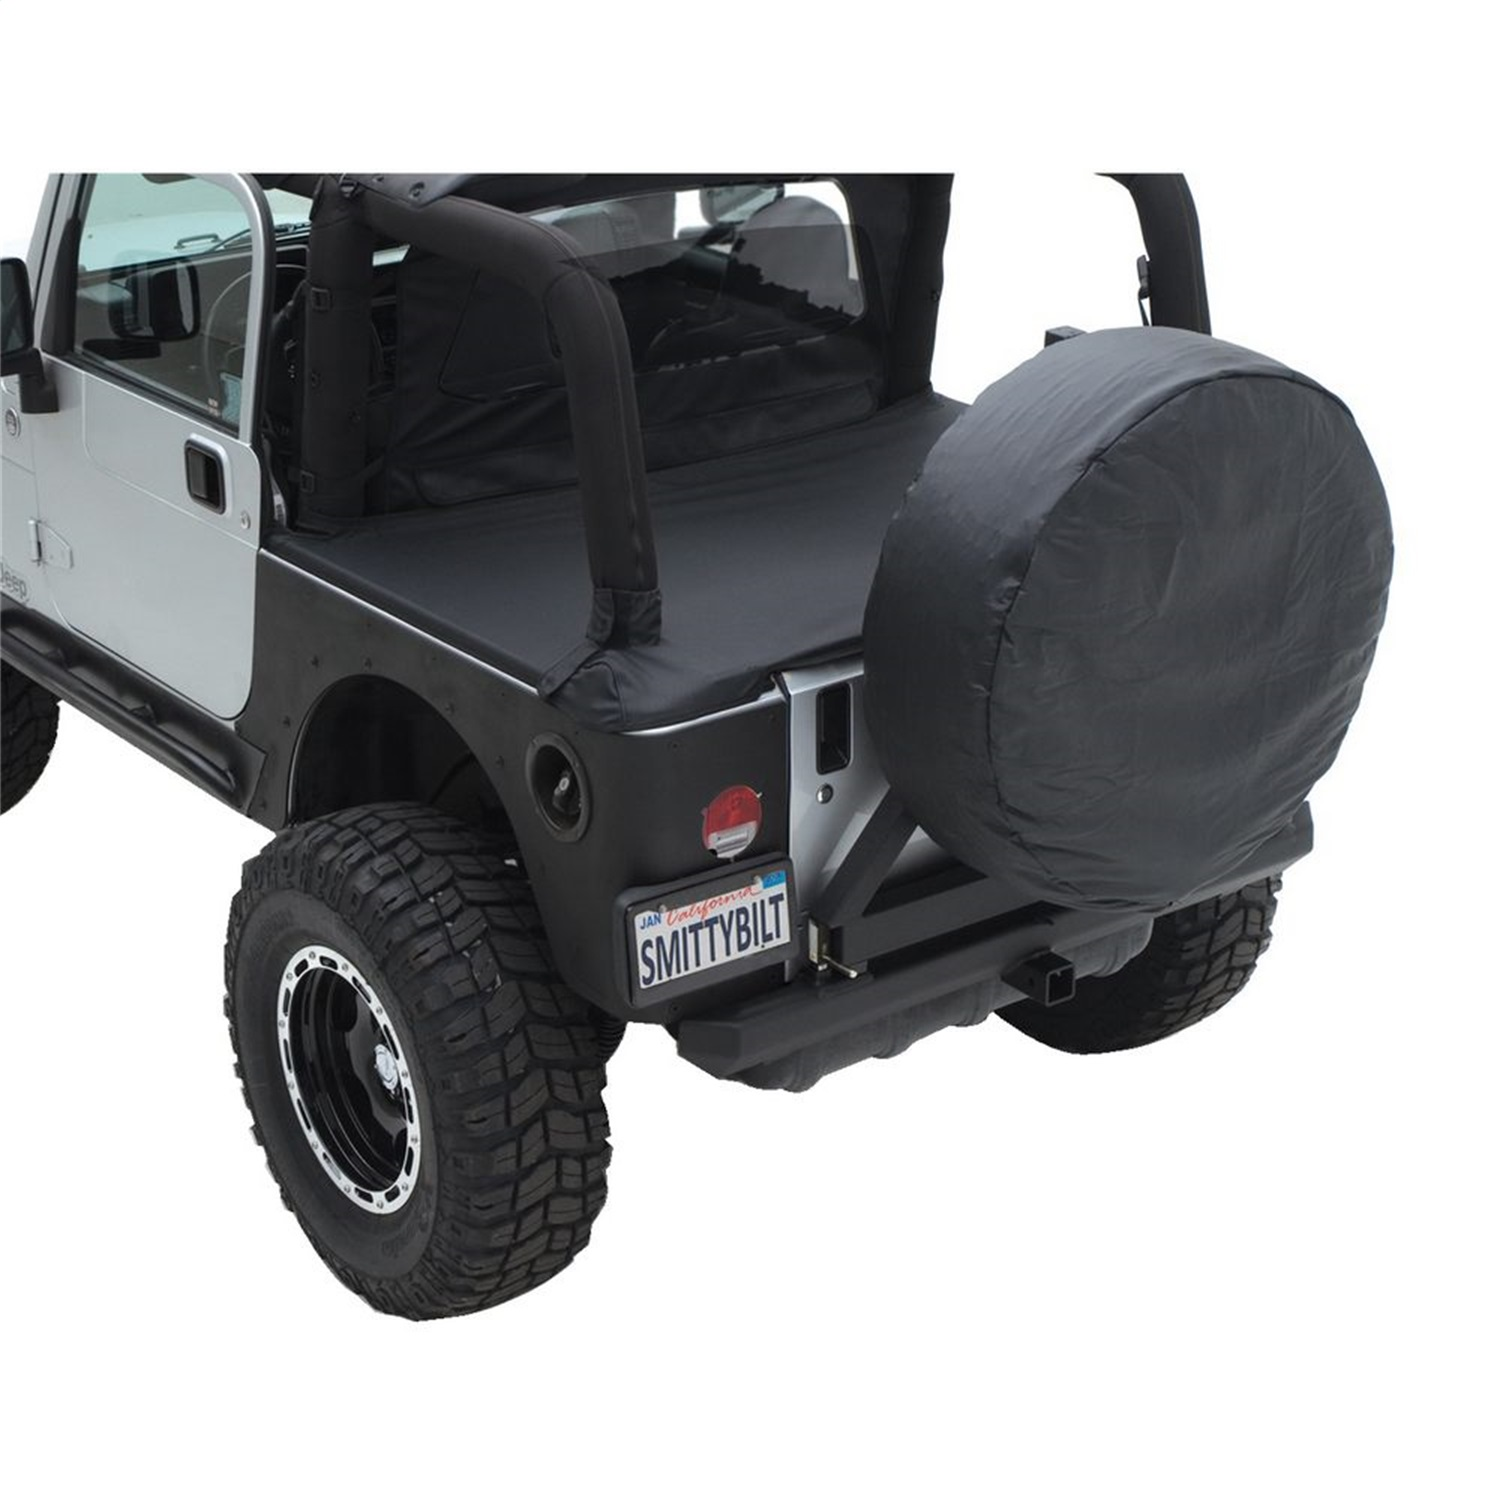 Smittybilt 761017 Tonneau Cover Fits 97 06 Wrangler Tj Spice Off Road Jeep Parts Diagram Sentinel